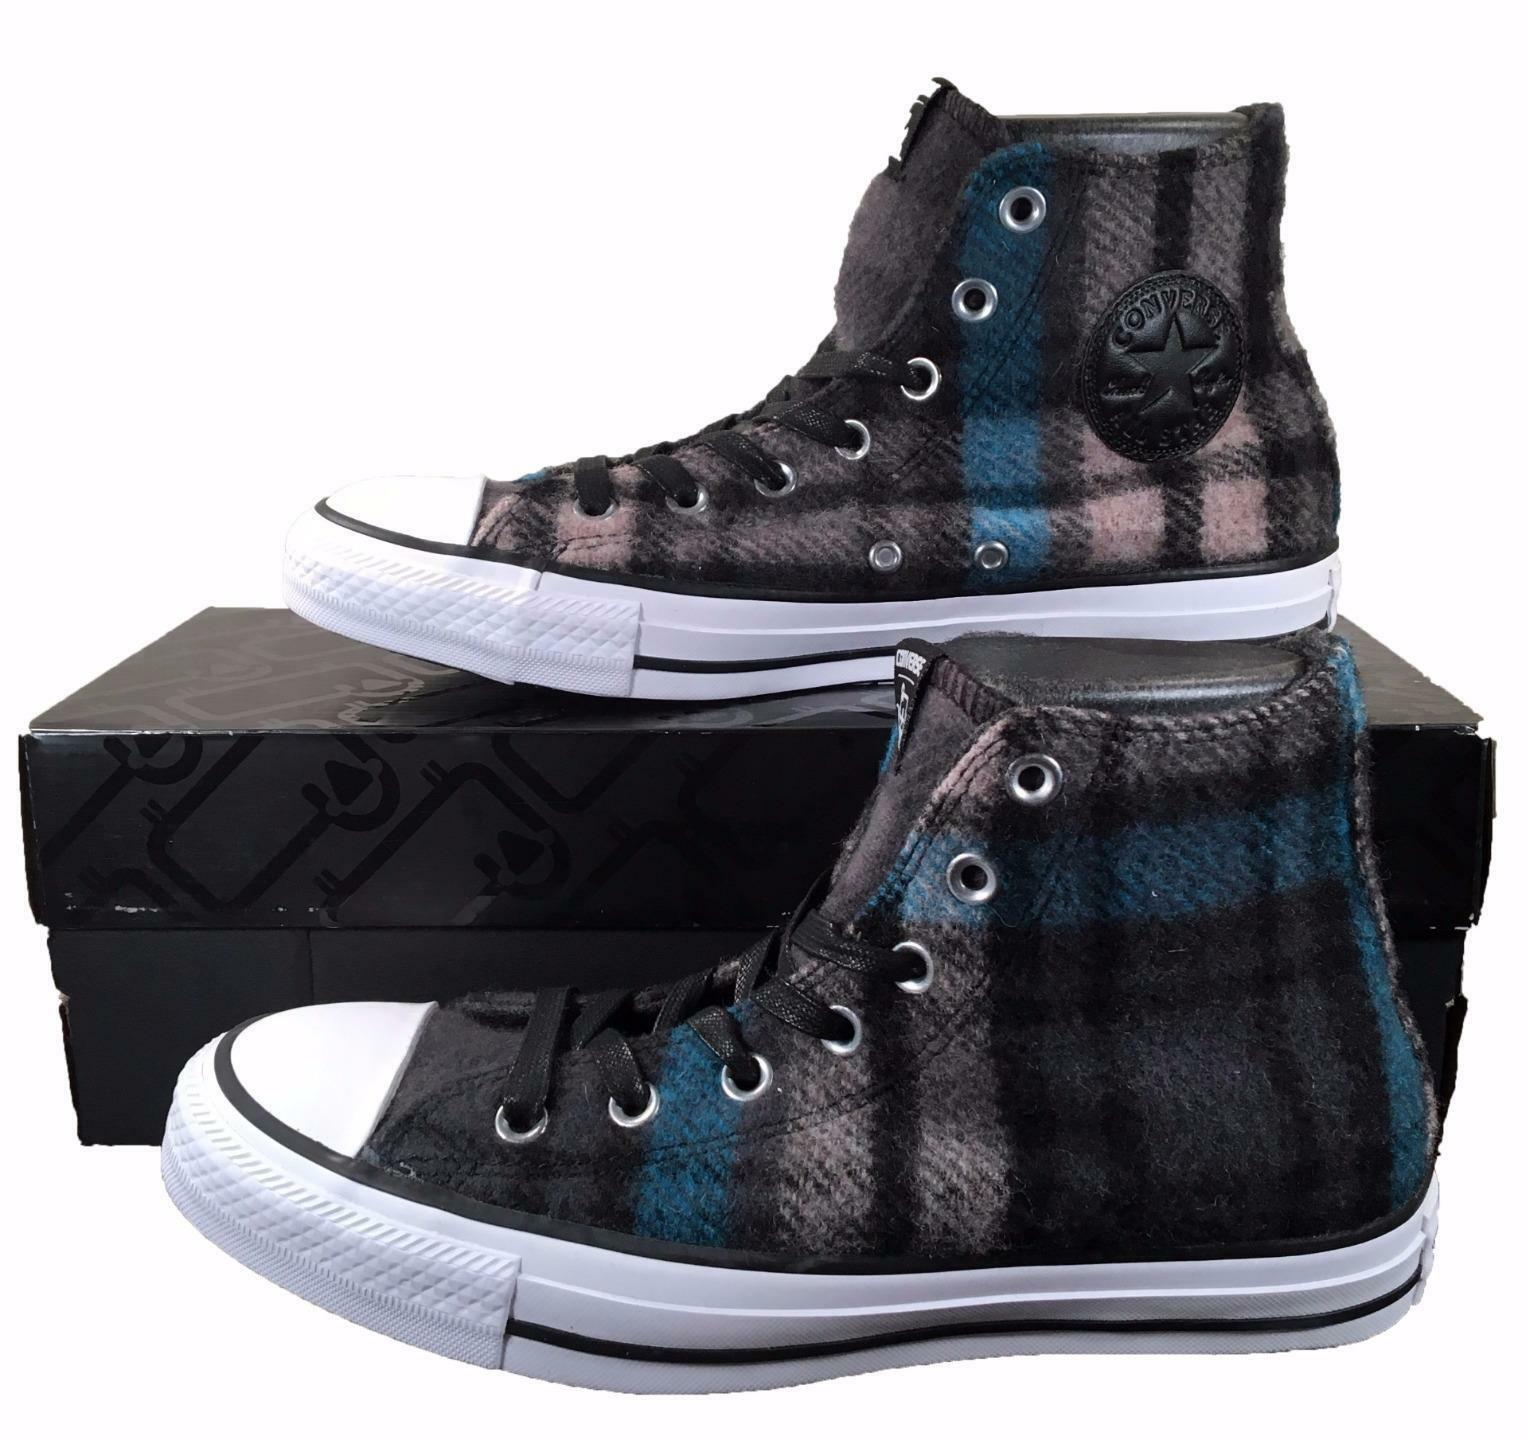 Converse by Woolrich Chuck Taylor All Star Sneakers Blue/Black Plaid Wool 149455 - $80.00